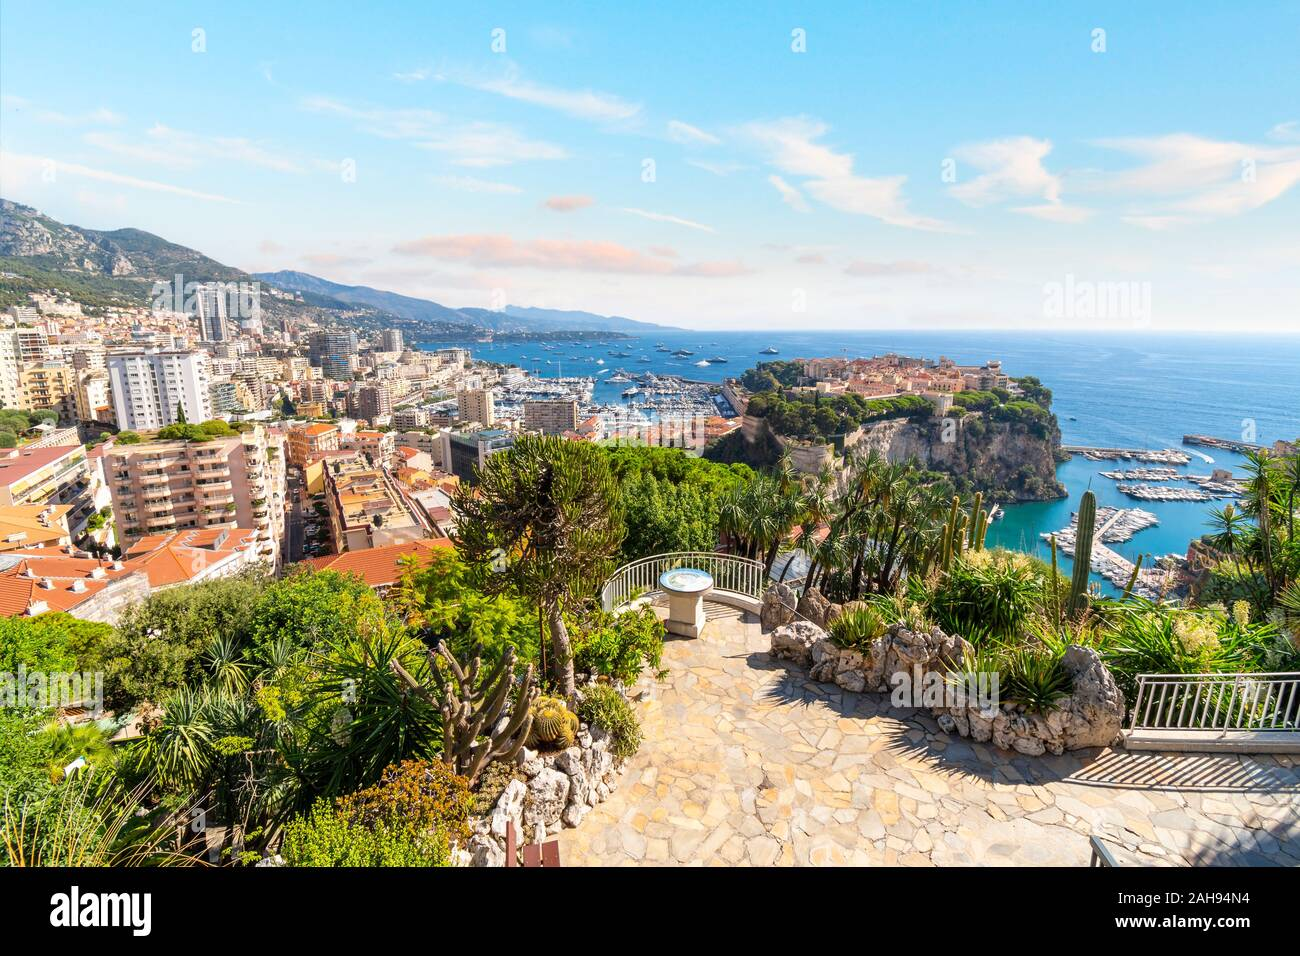 View of the Mediterranean Sea, and the marina, port, cities of Monte Carlo and Fontvieille, and rock of Monte Carlo, Monaco, from the Exotic Gardens. Stock Photo